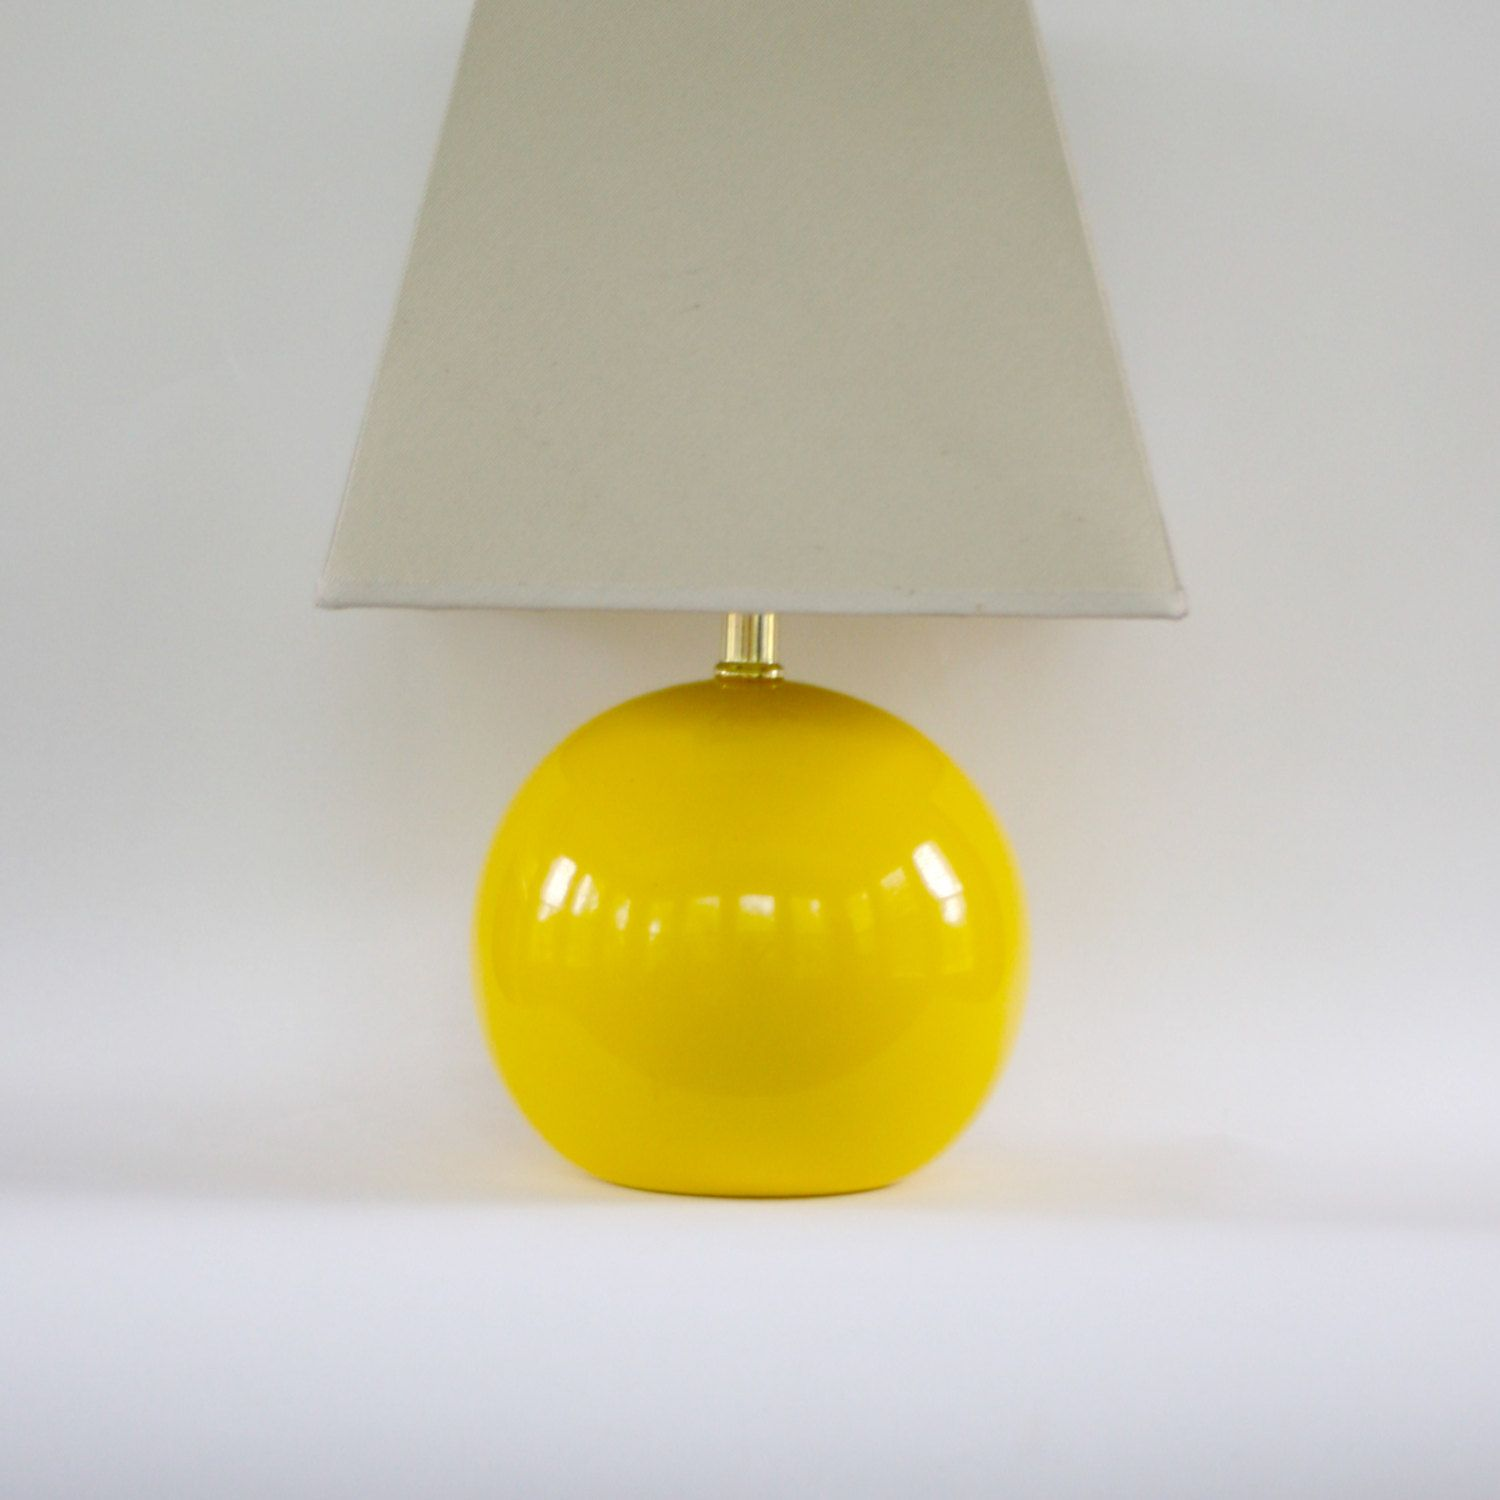 Vintage Modern Yellow Lamp Vintage Table Lamp by RhapsodyAttic   145 00. Vintage Modern Yellow Lamp Vintage Table Lamp by RhapsodyAttic